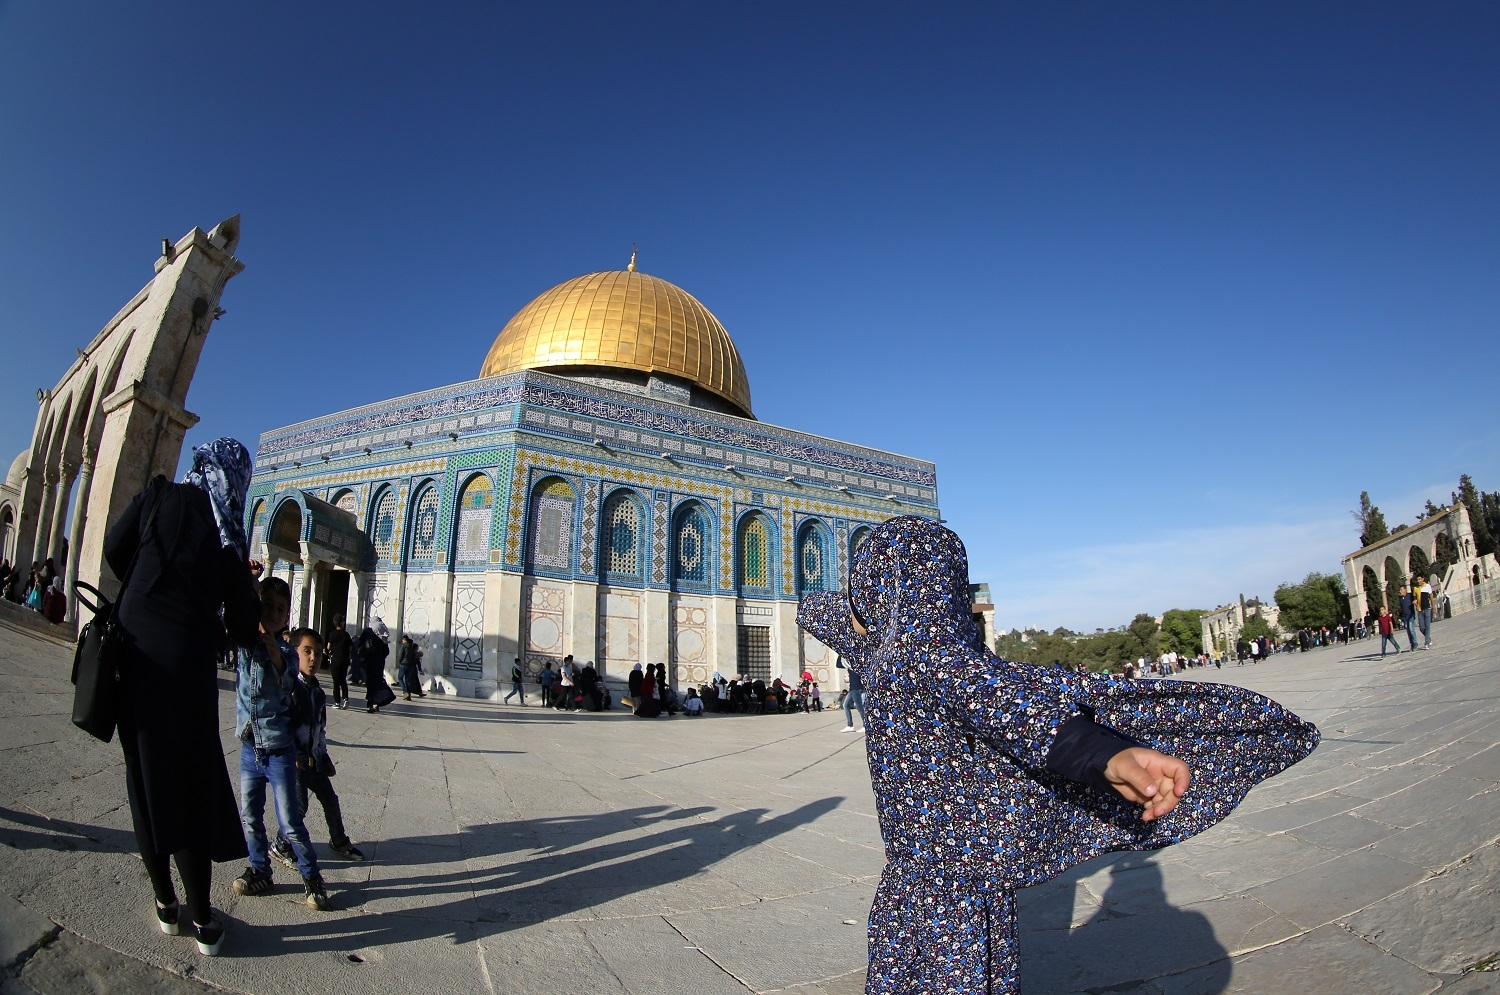 Palestinians walk in front of the Dome of the Rock mosque at the al-Aqsa mosque compound in Jerusalem's Old City on April 24, 2017.  / AFP PHOTO / Mahmud Hams